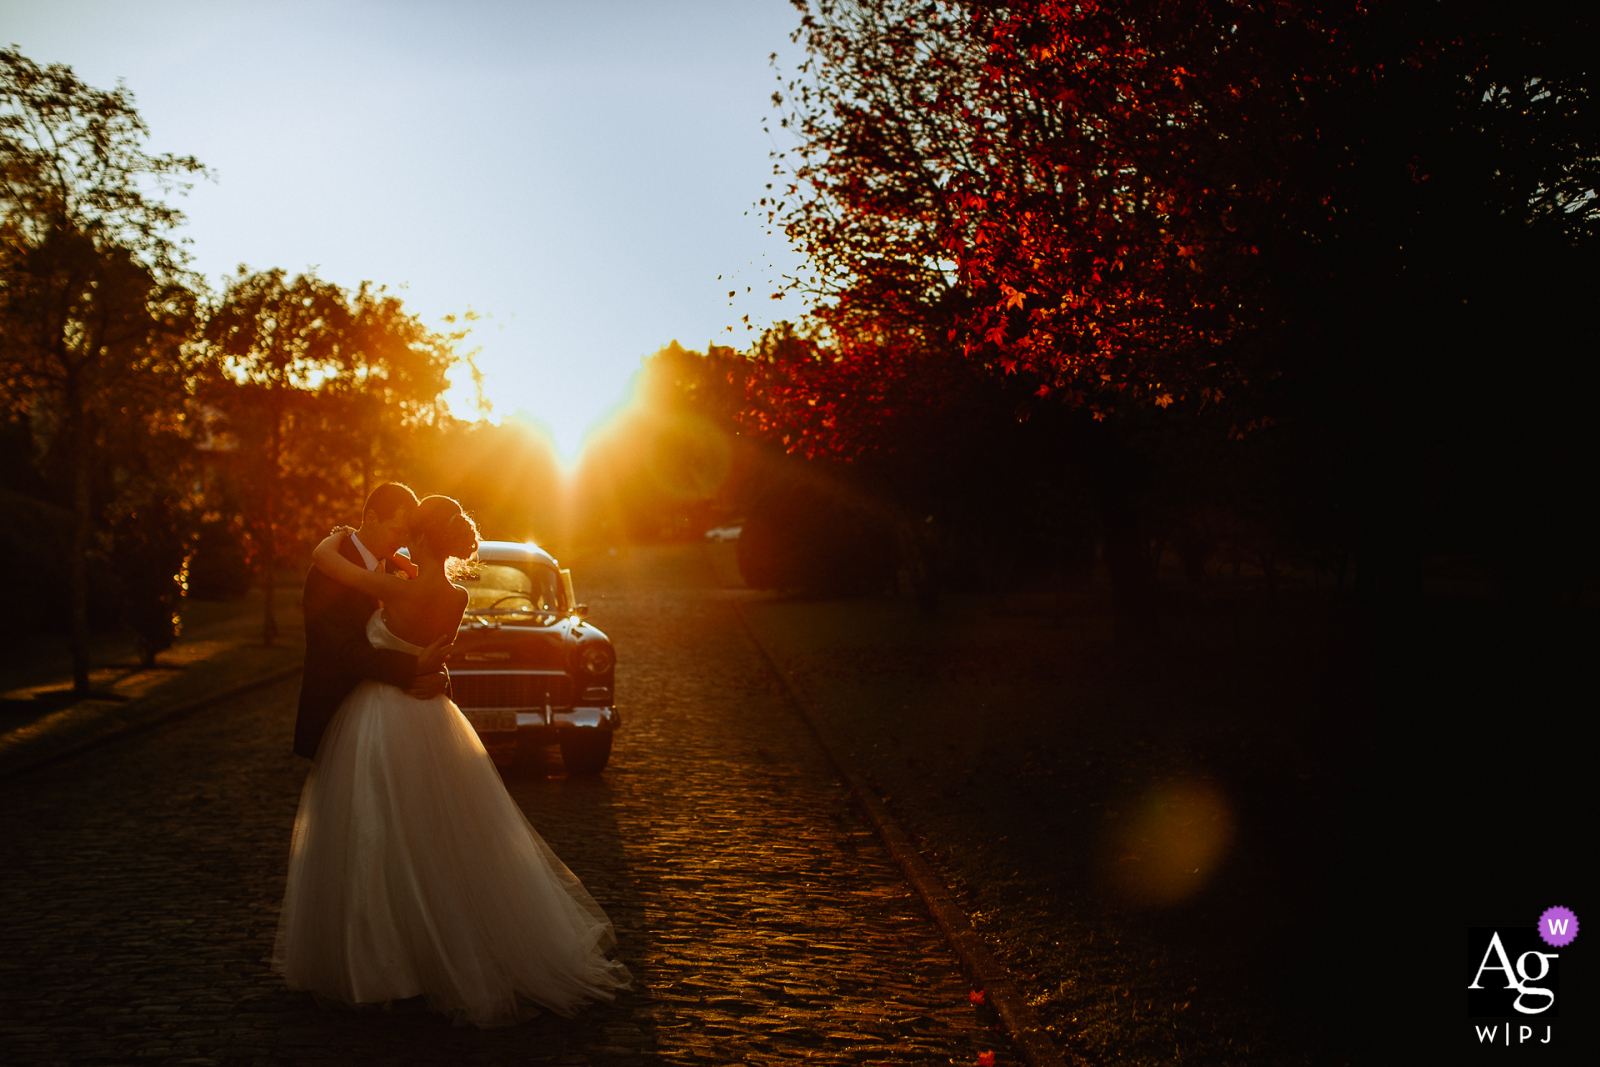 Gramado - Brazil Bride and groom dancing at sunset in this creative wedding photo